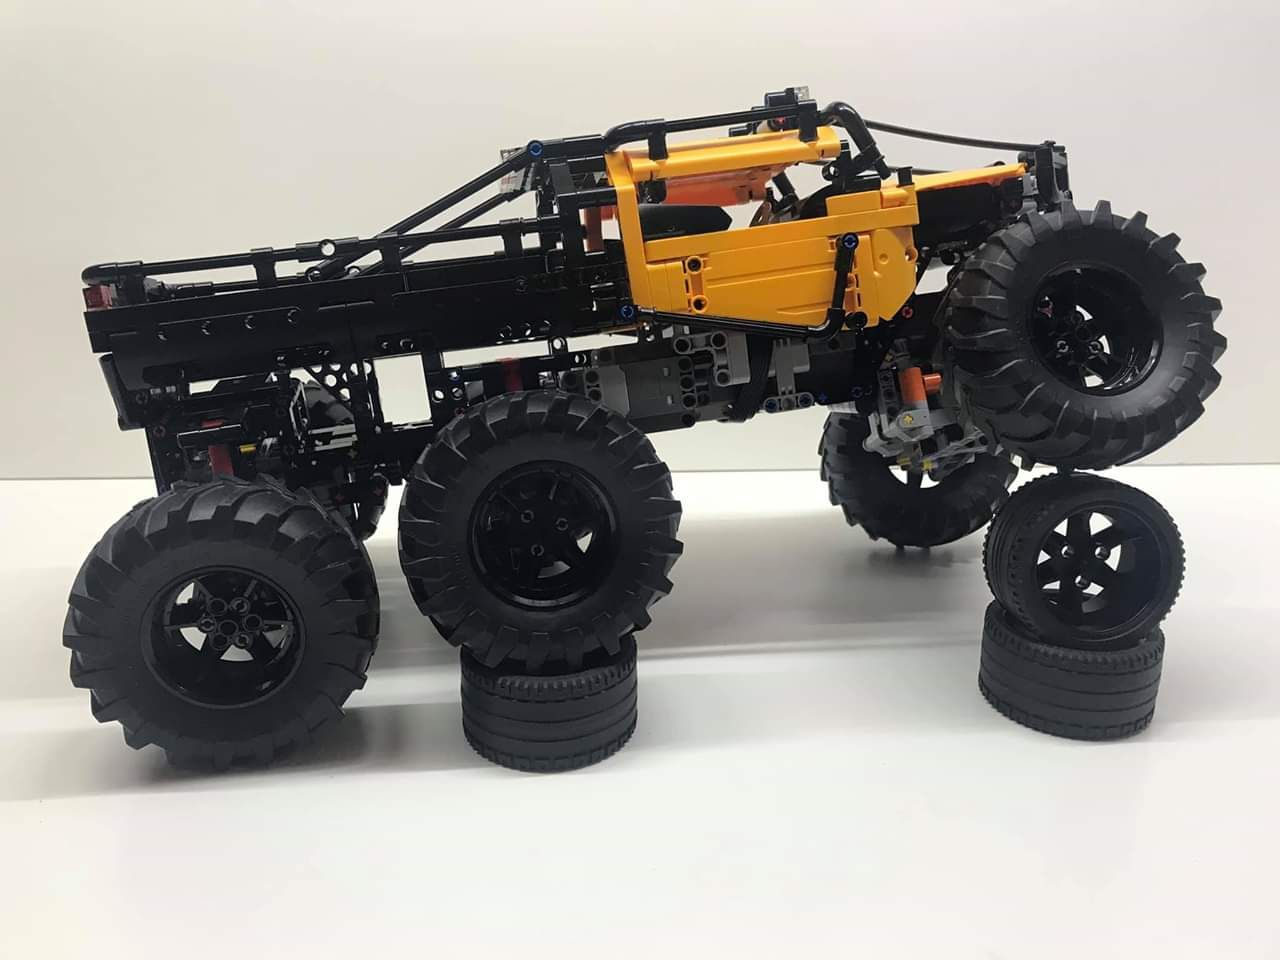 Lego Technic 42099 4x4 X Treme Off Roader Has Lights And Gamepad Control With Brickcontroller 2 Youtube